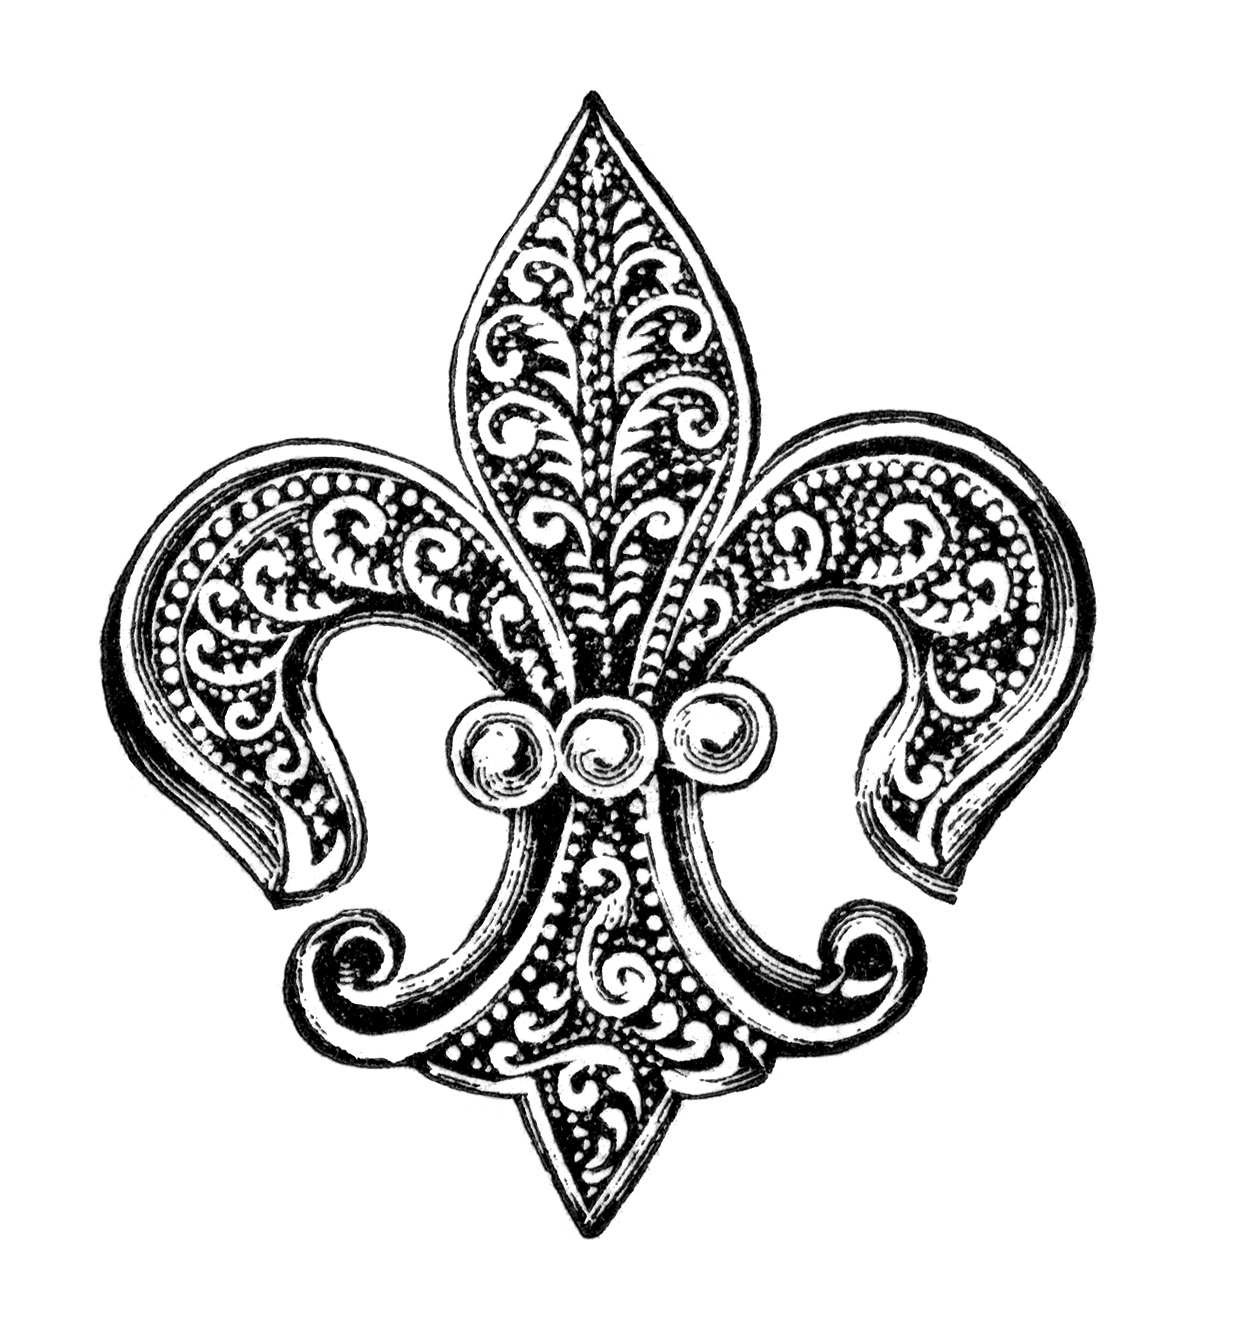 hight resolution of free vintage image fleur de lis pin with pearls clip art old